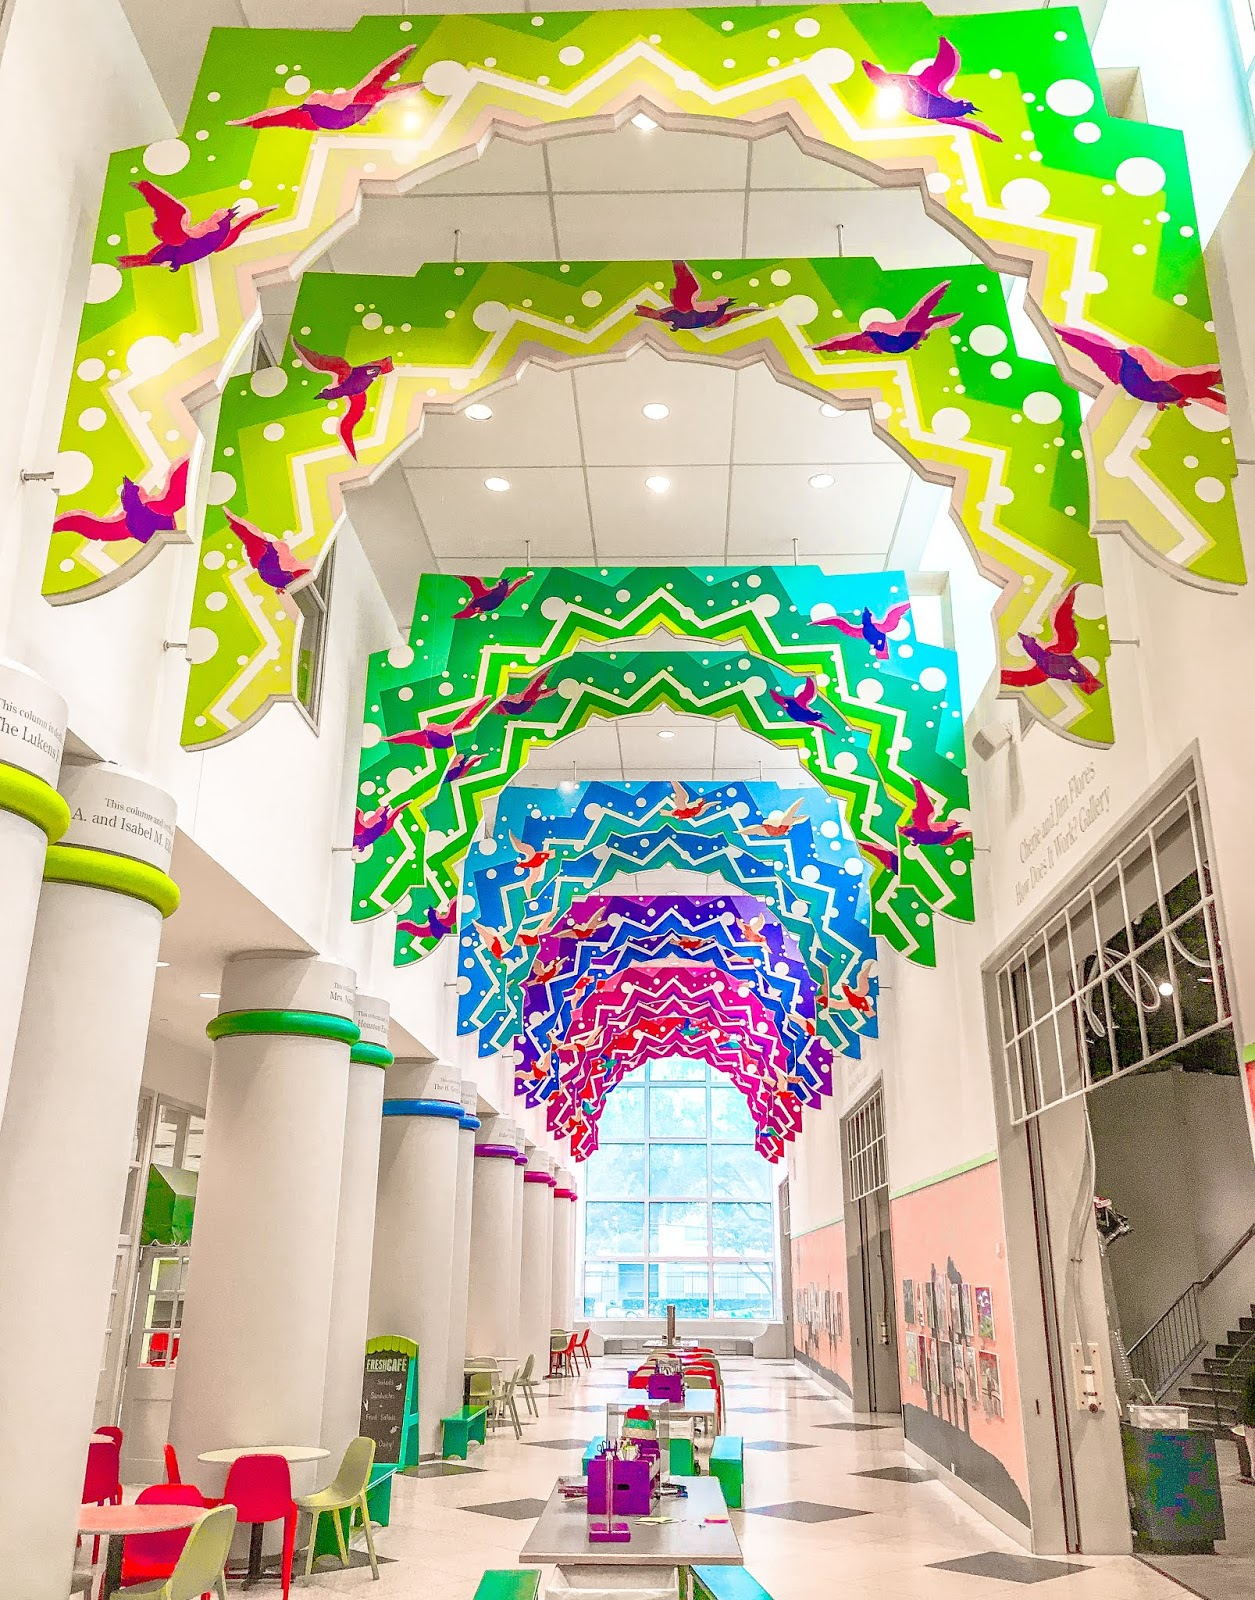 The Hallway in Children's Museum of Houston